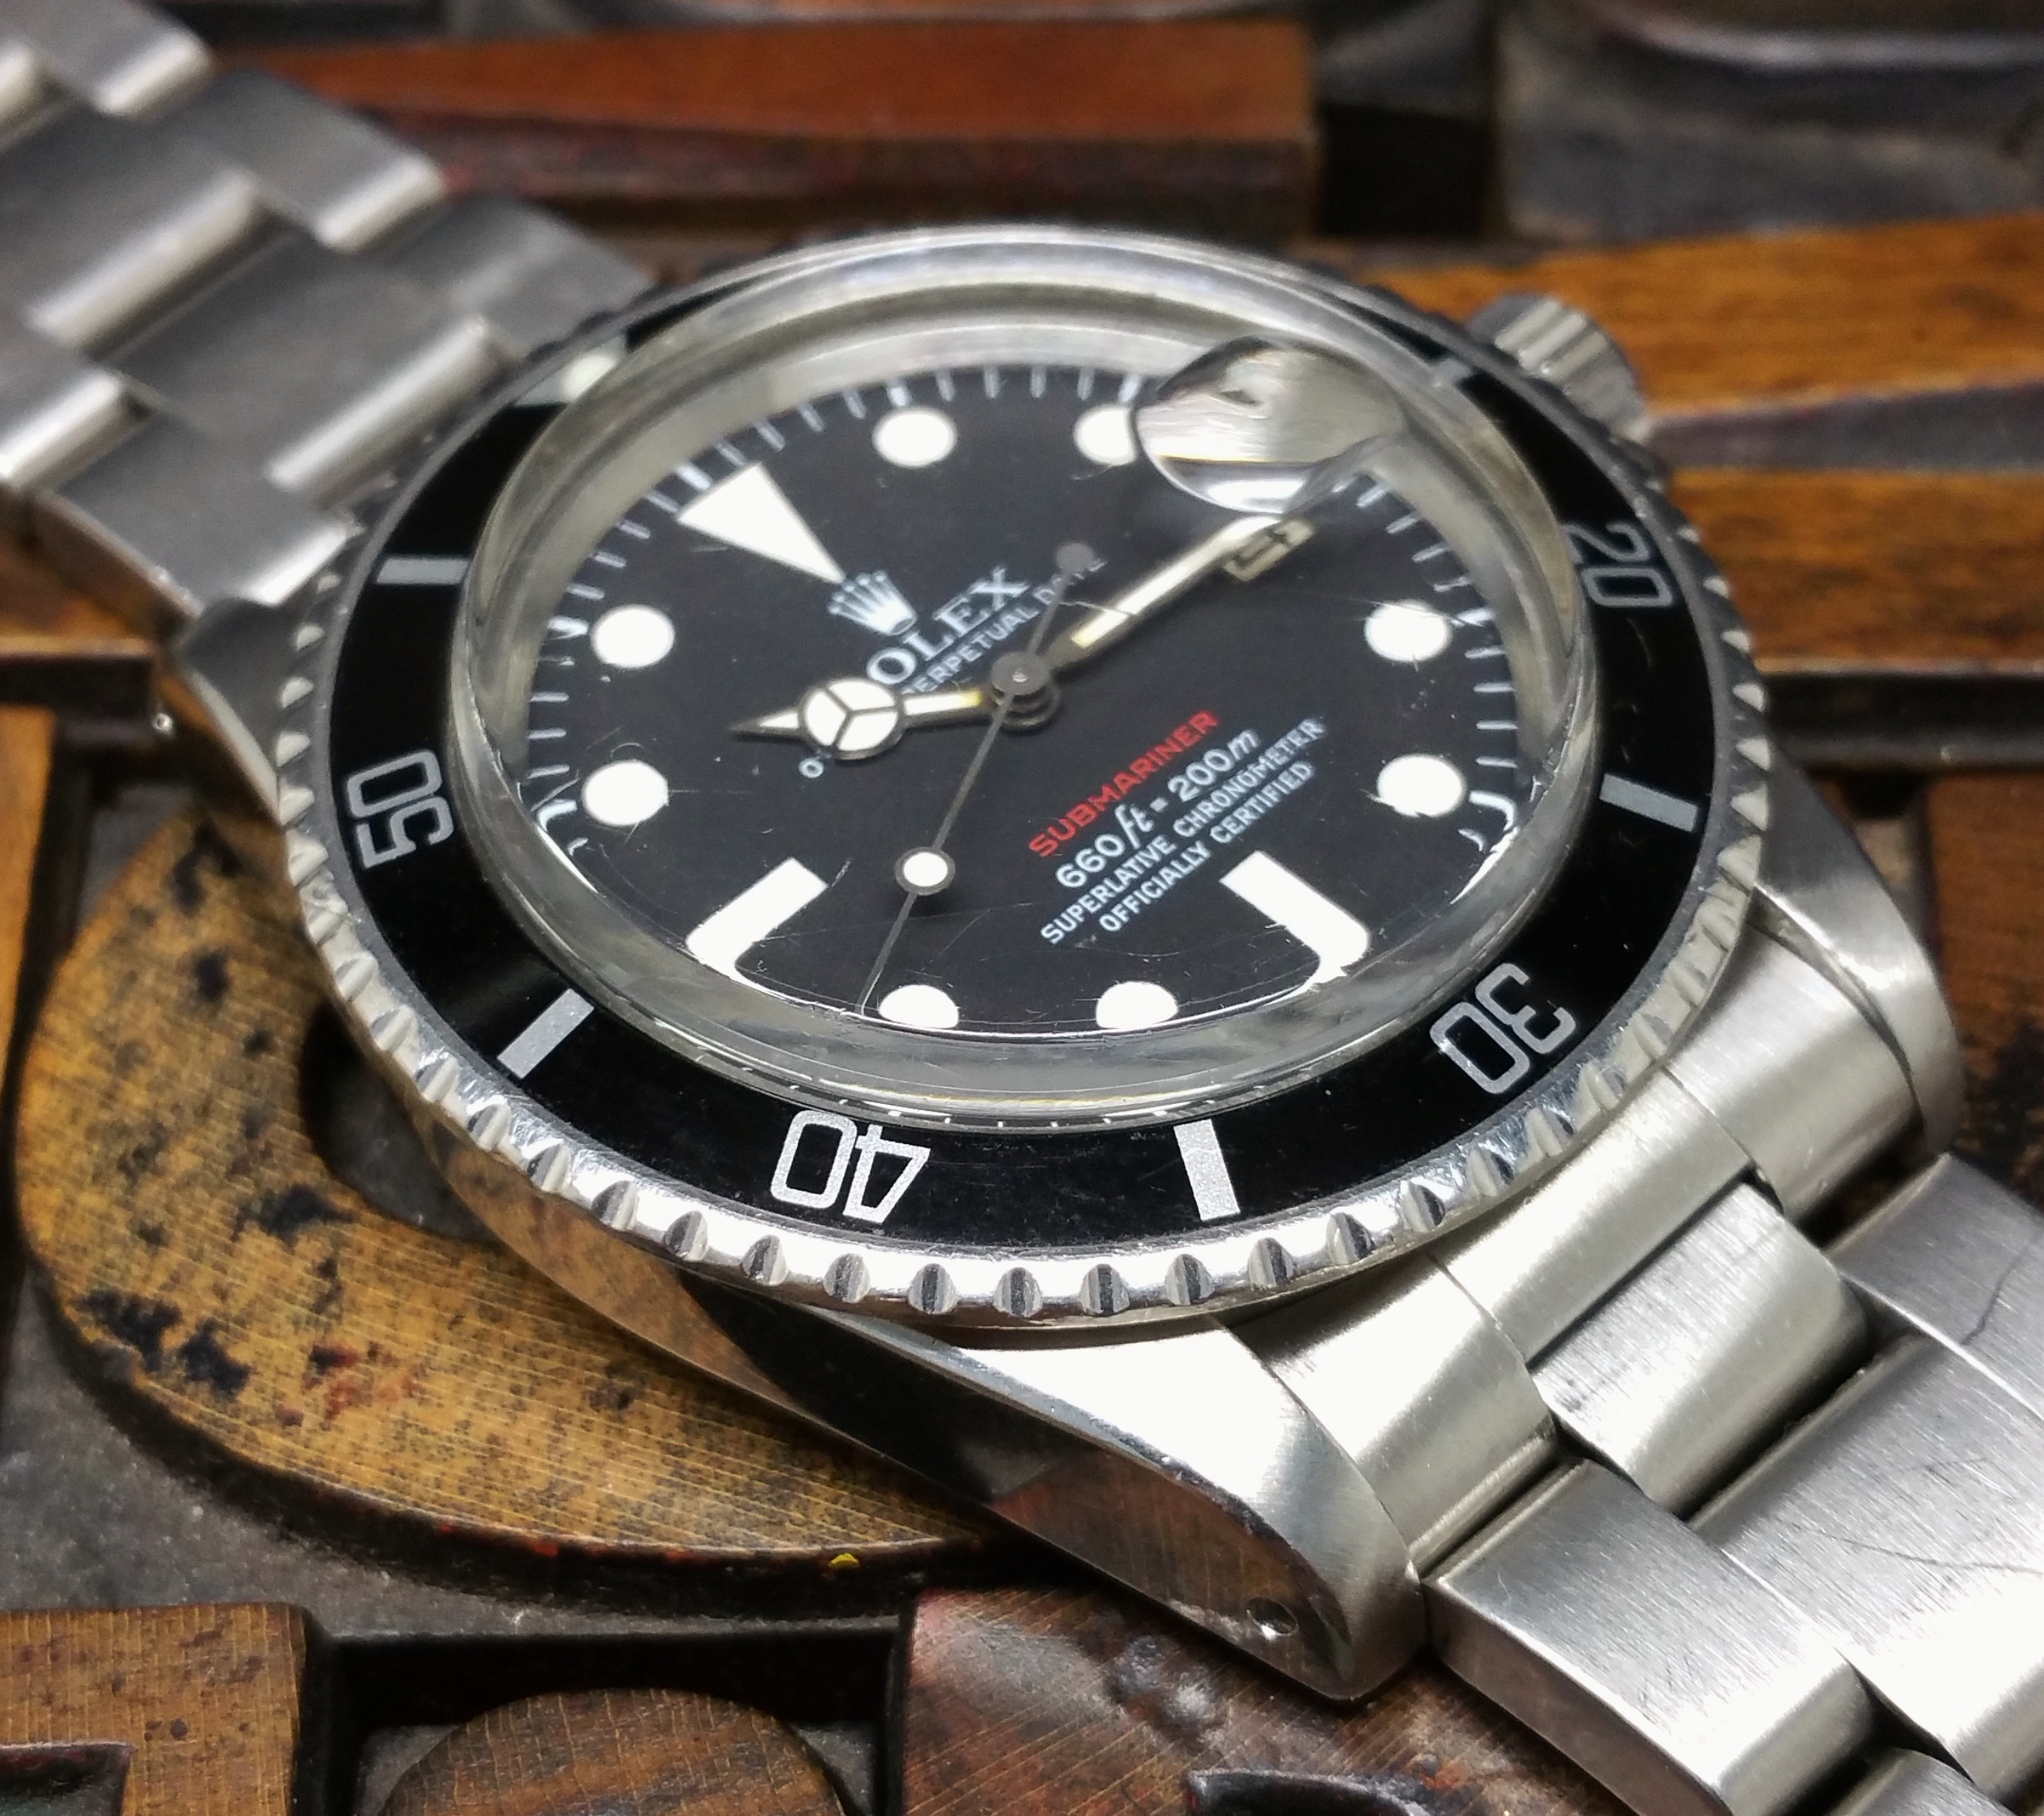 1972 Rolex Submariner Red 1680 Mark V Dial